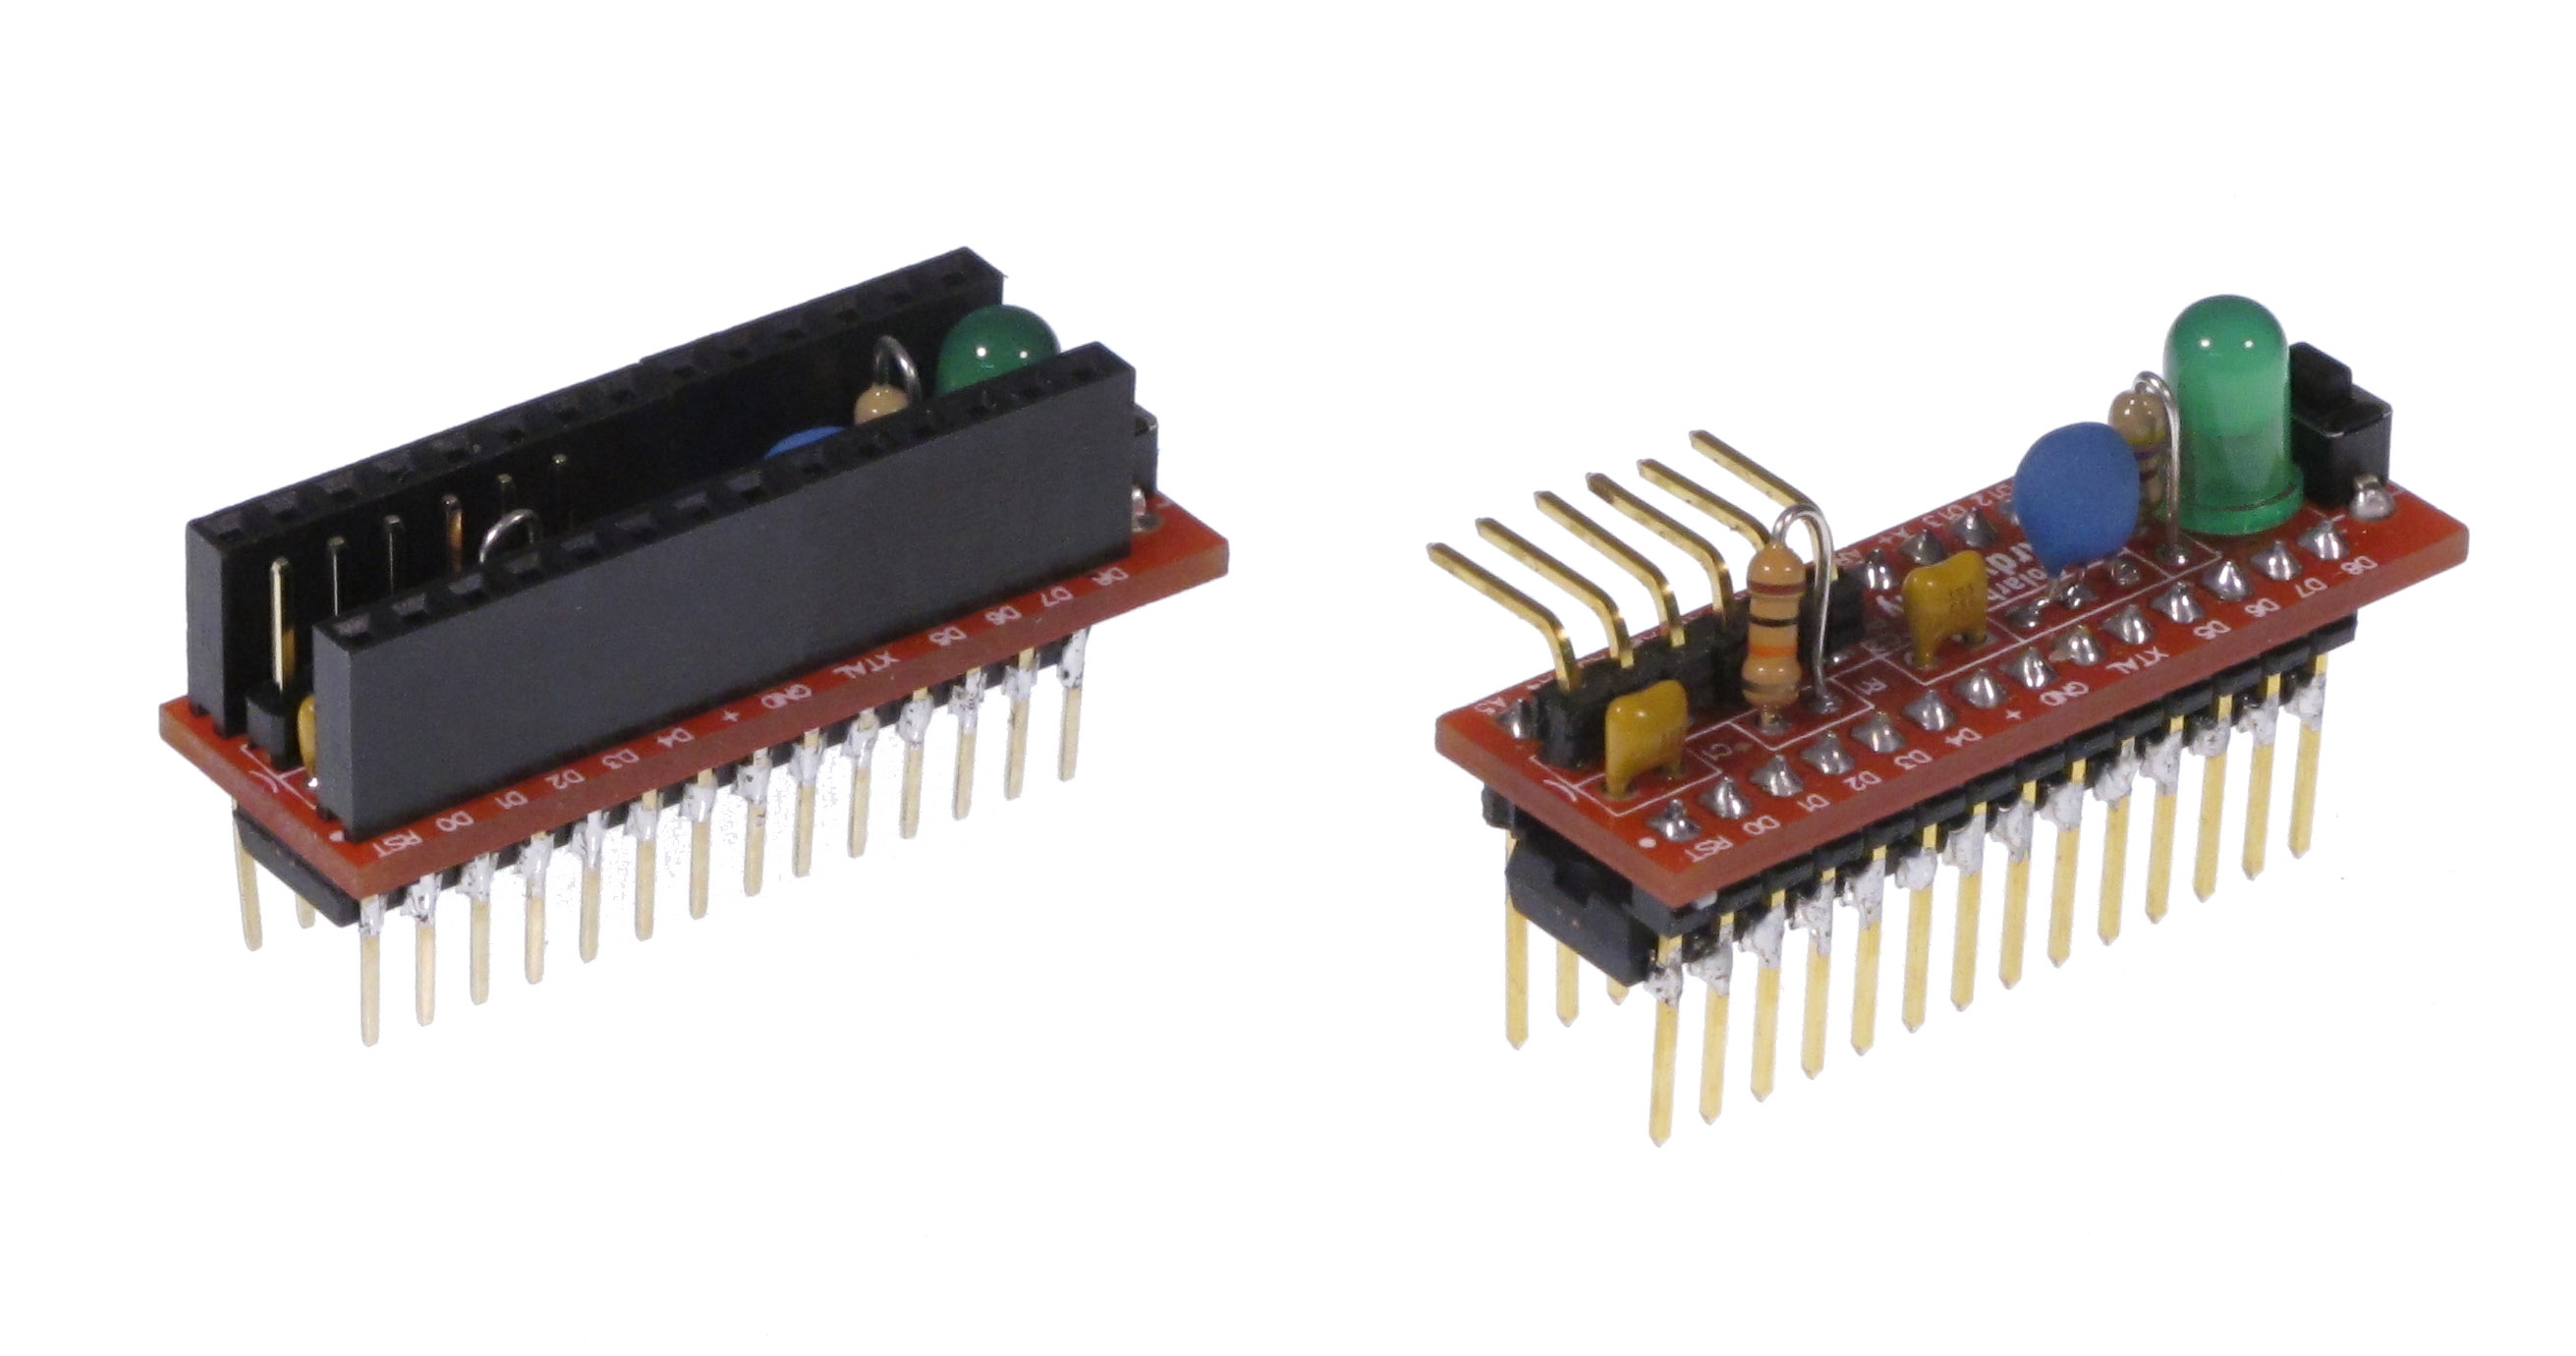 The Ardweeny: the little friend of the Arduino (and how to beef it up)